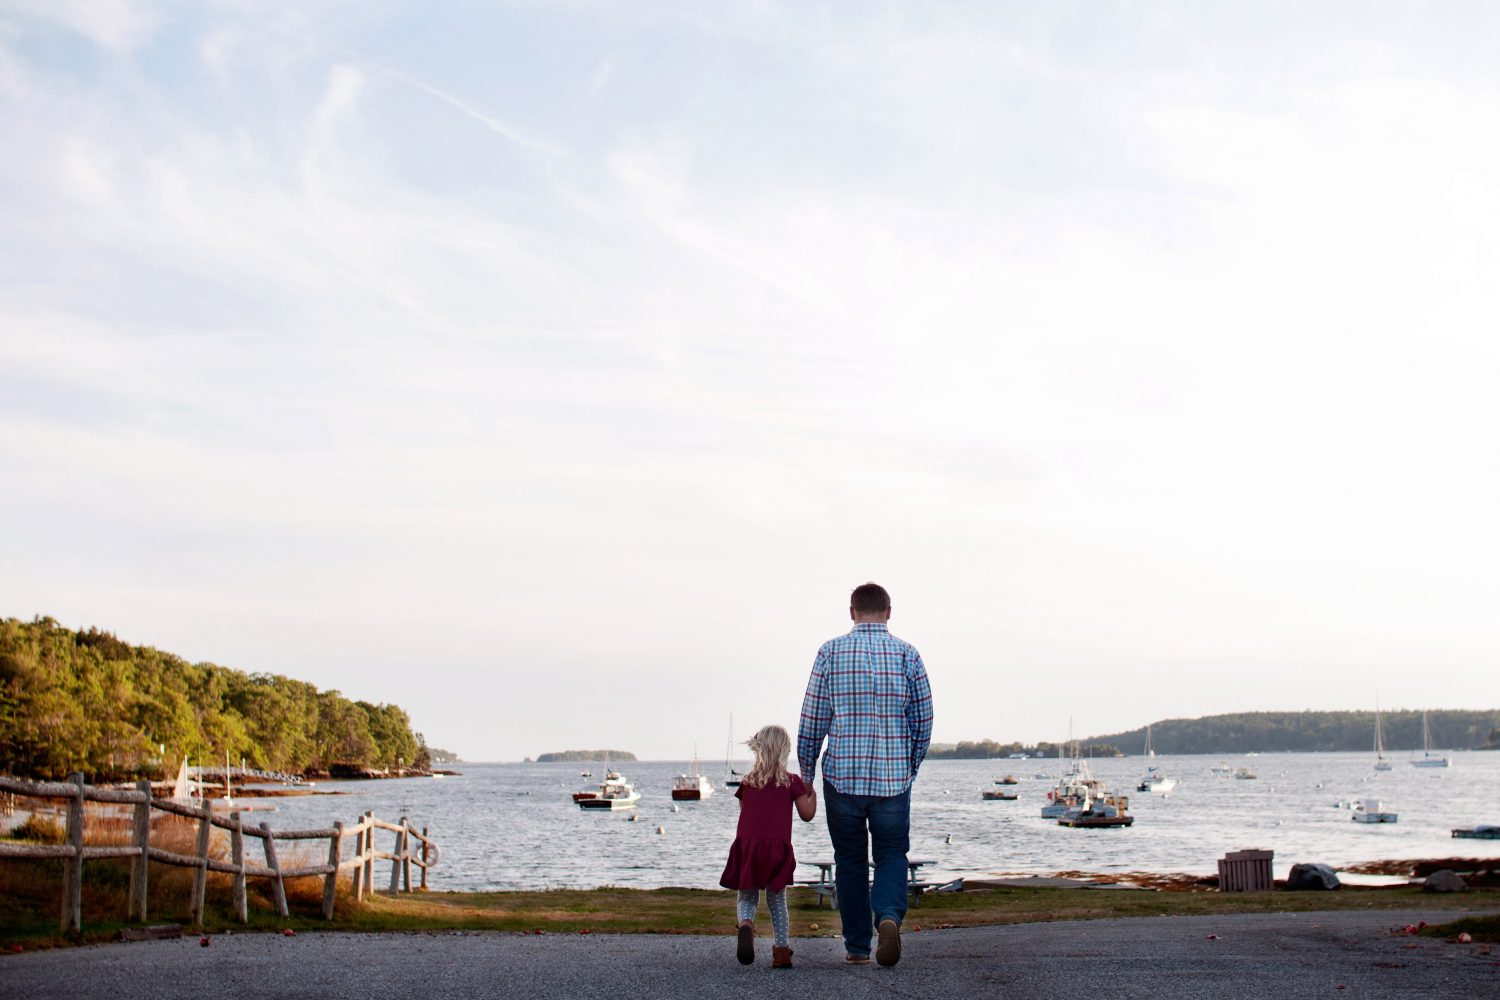 father and young daughter walking hand in hand at a harbor full of boats